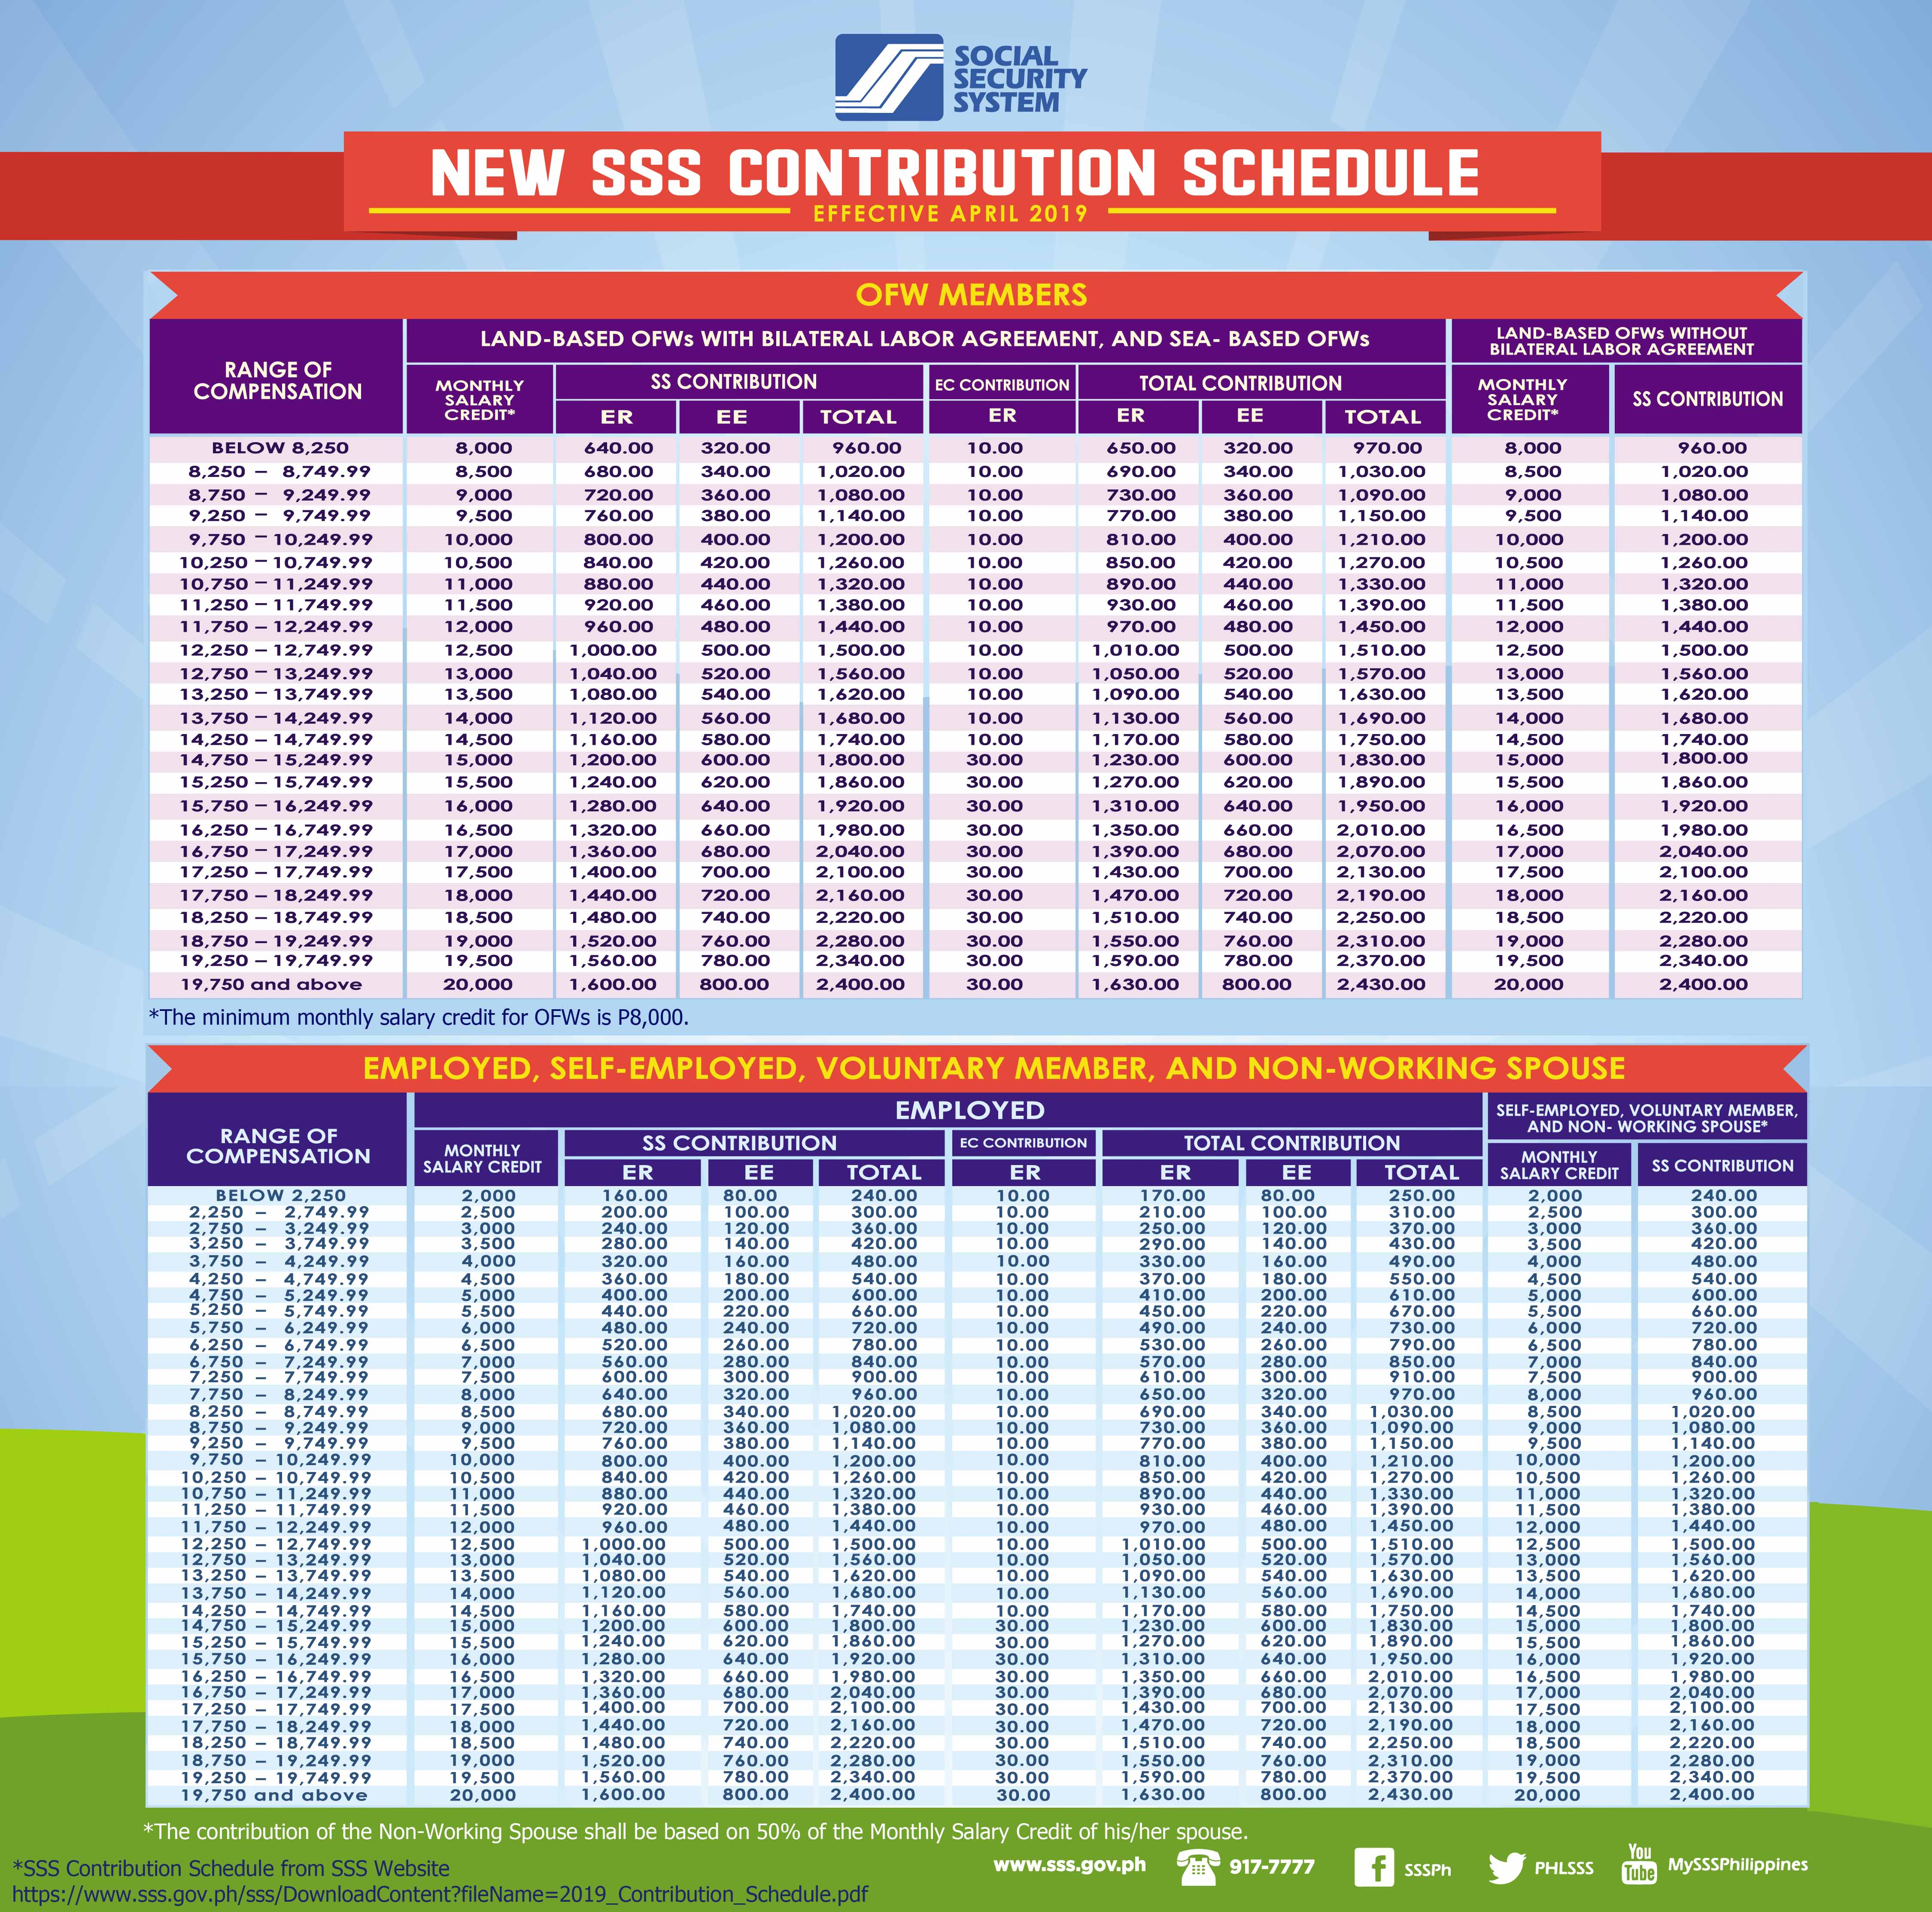 NEW SSS CONTRIBUTION SCHEDULE